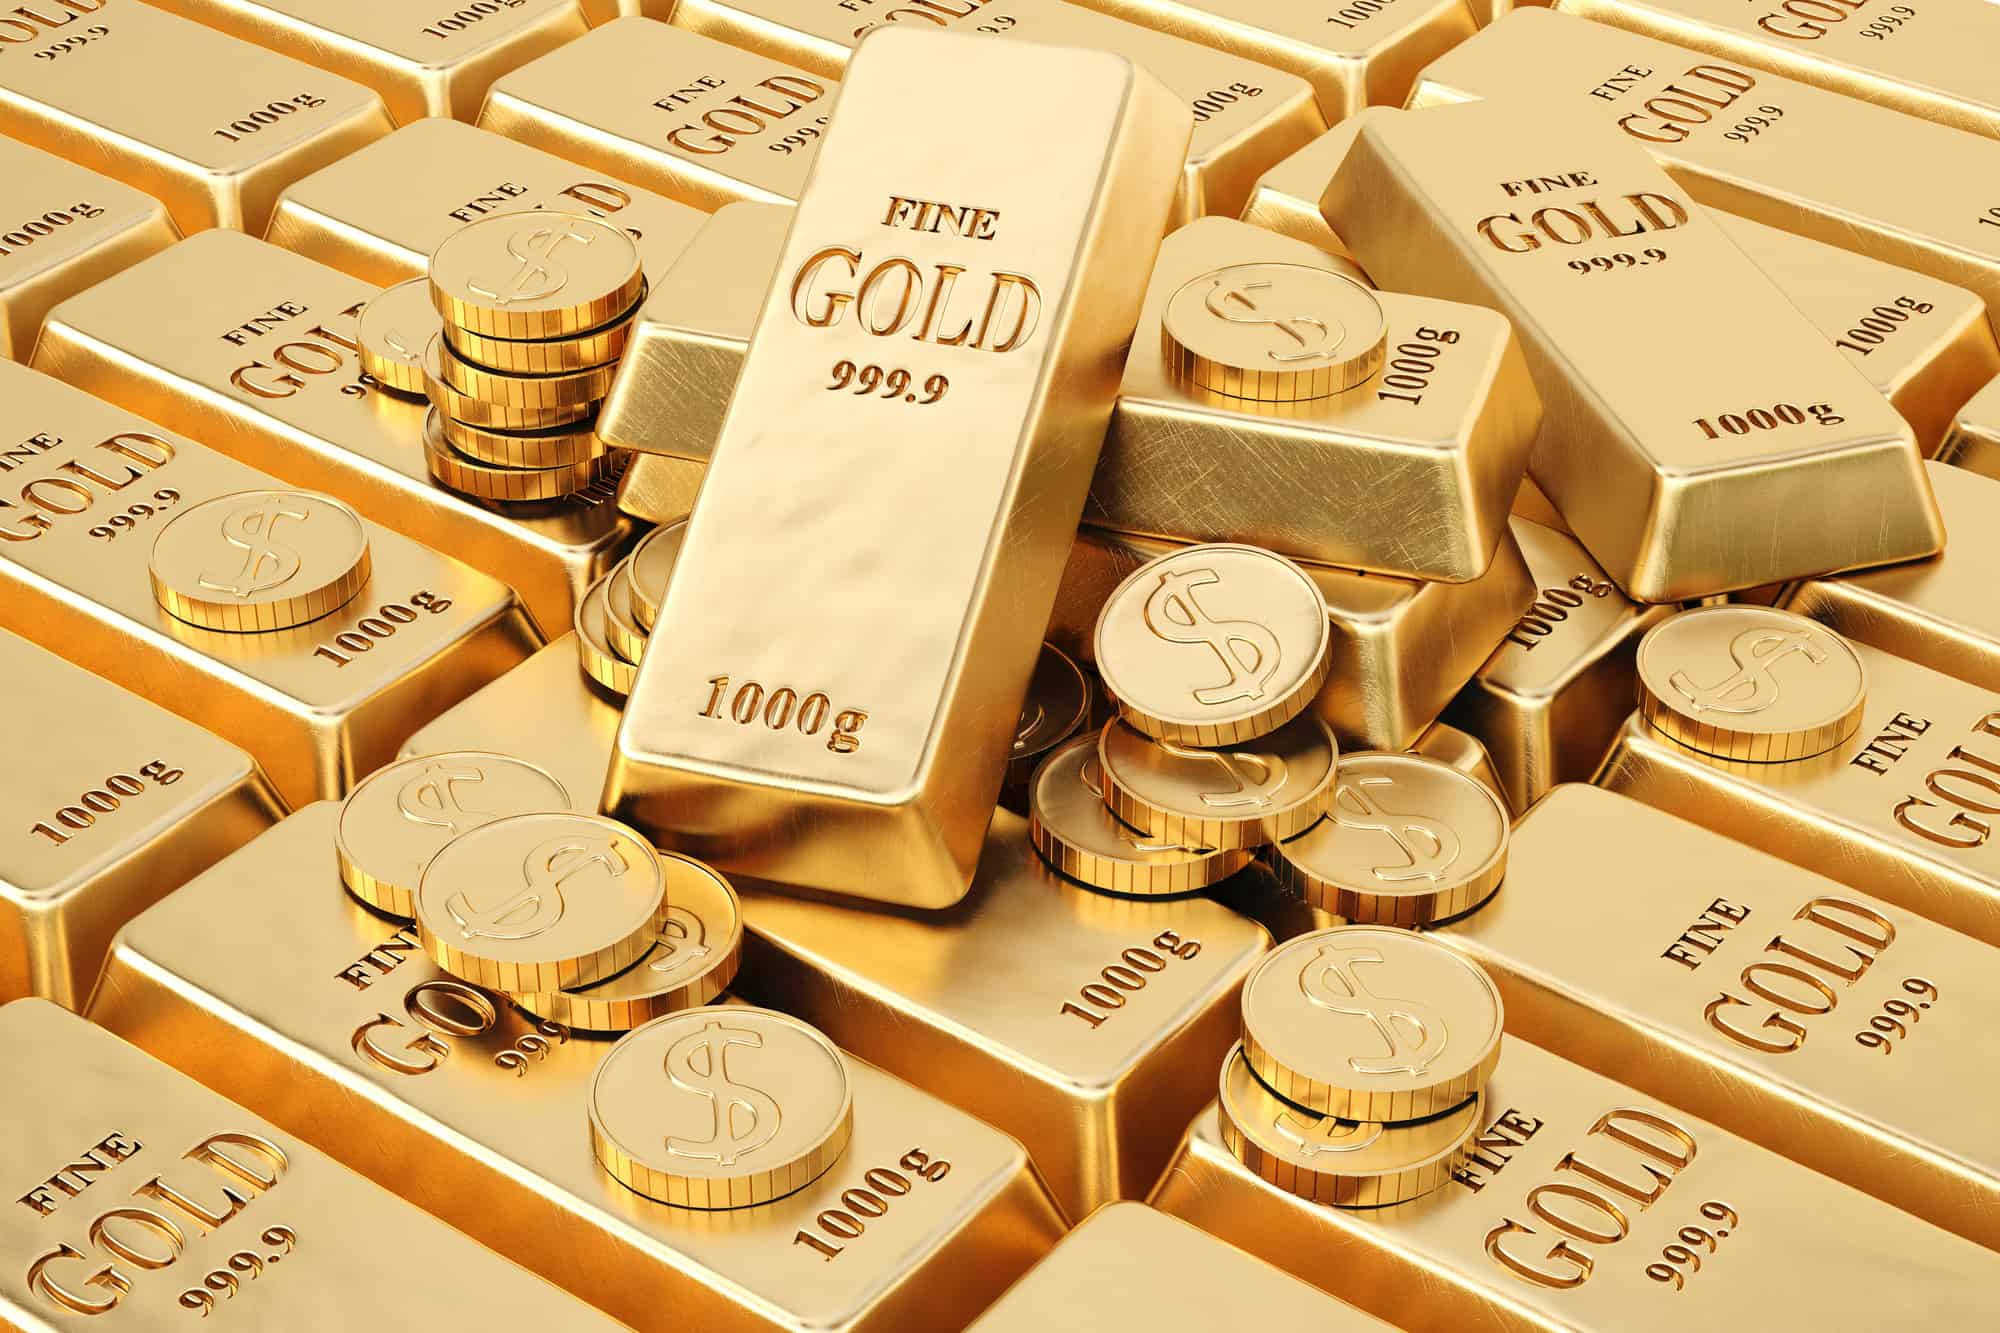 bullion gold coin for a different type of gold coin